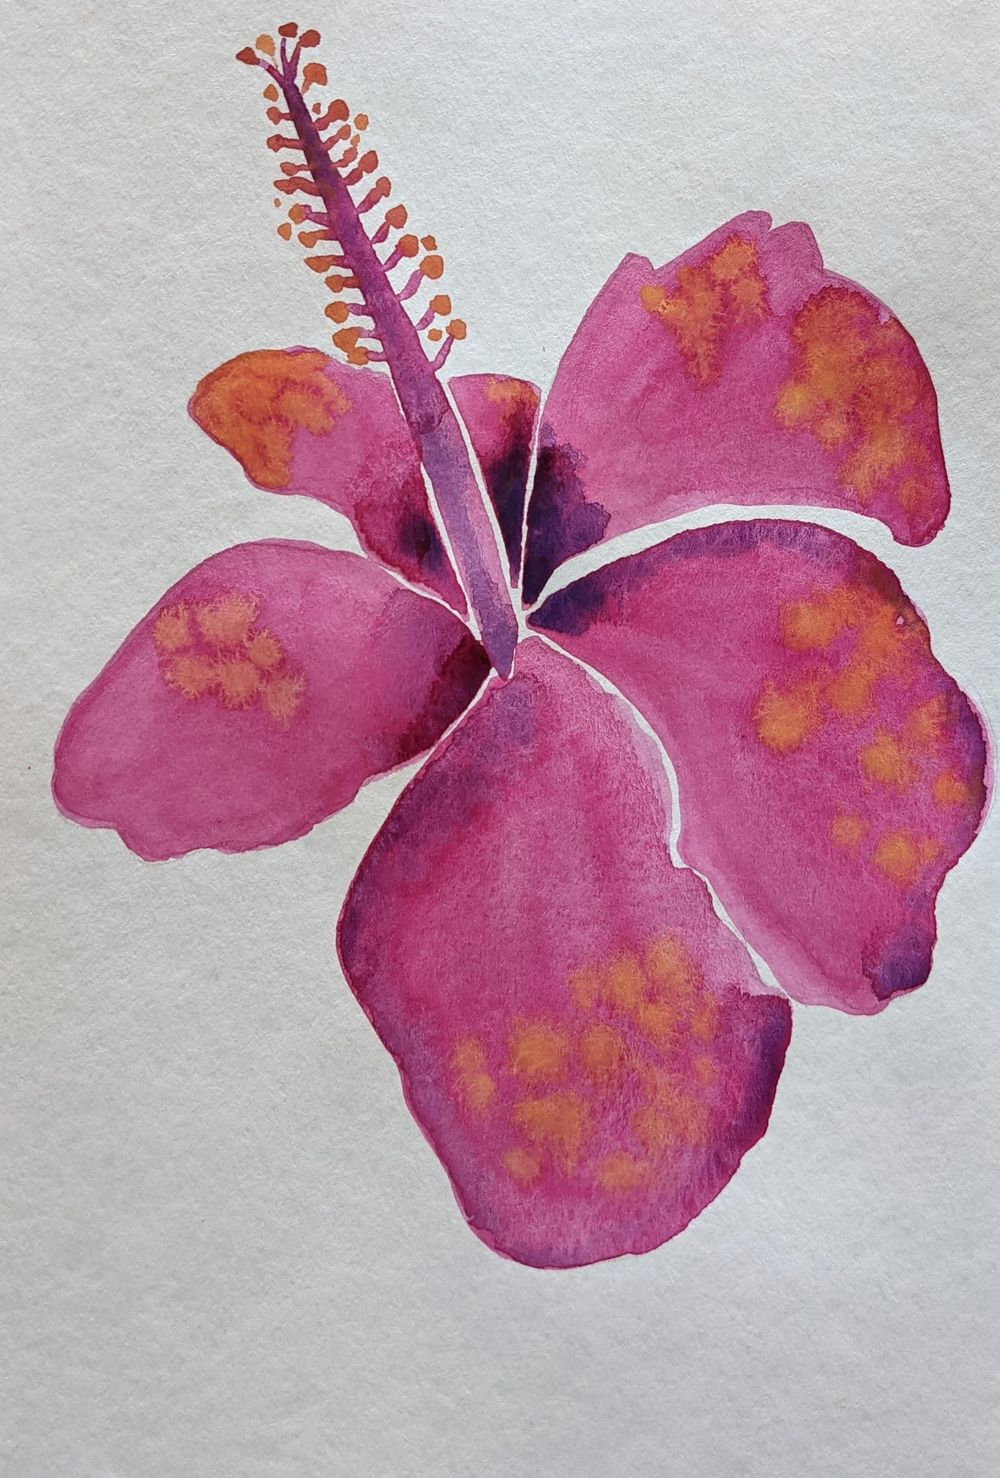 Botanical watercolors - image 3 - student project